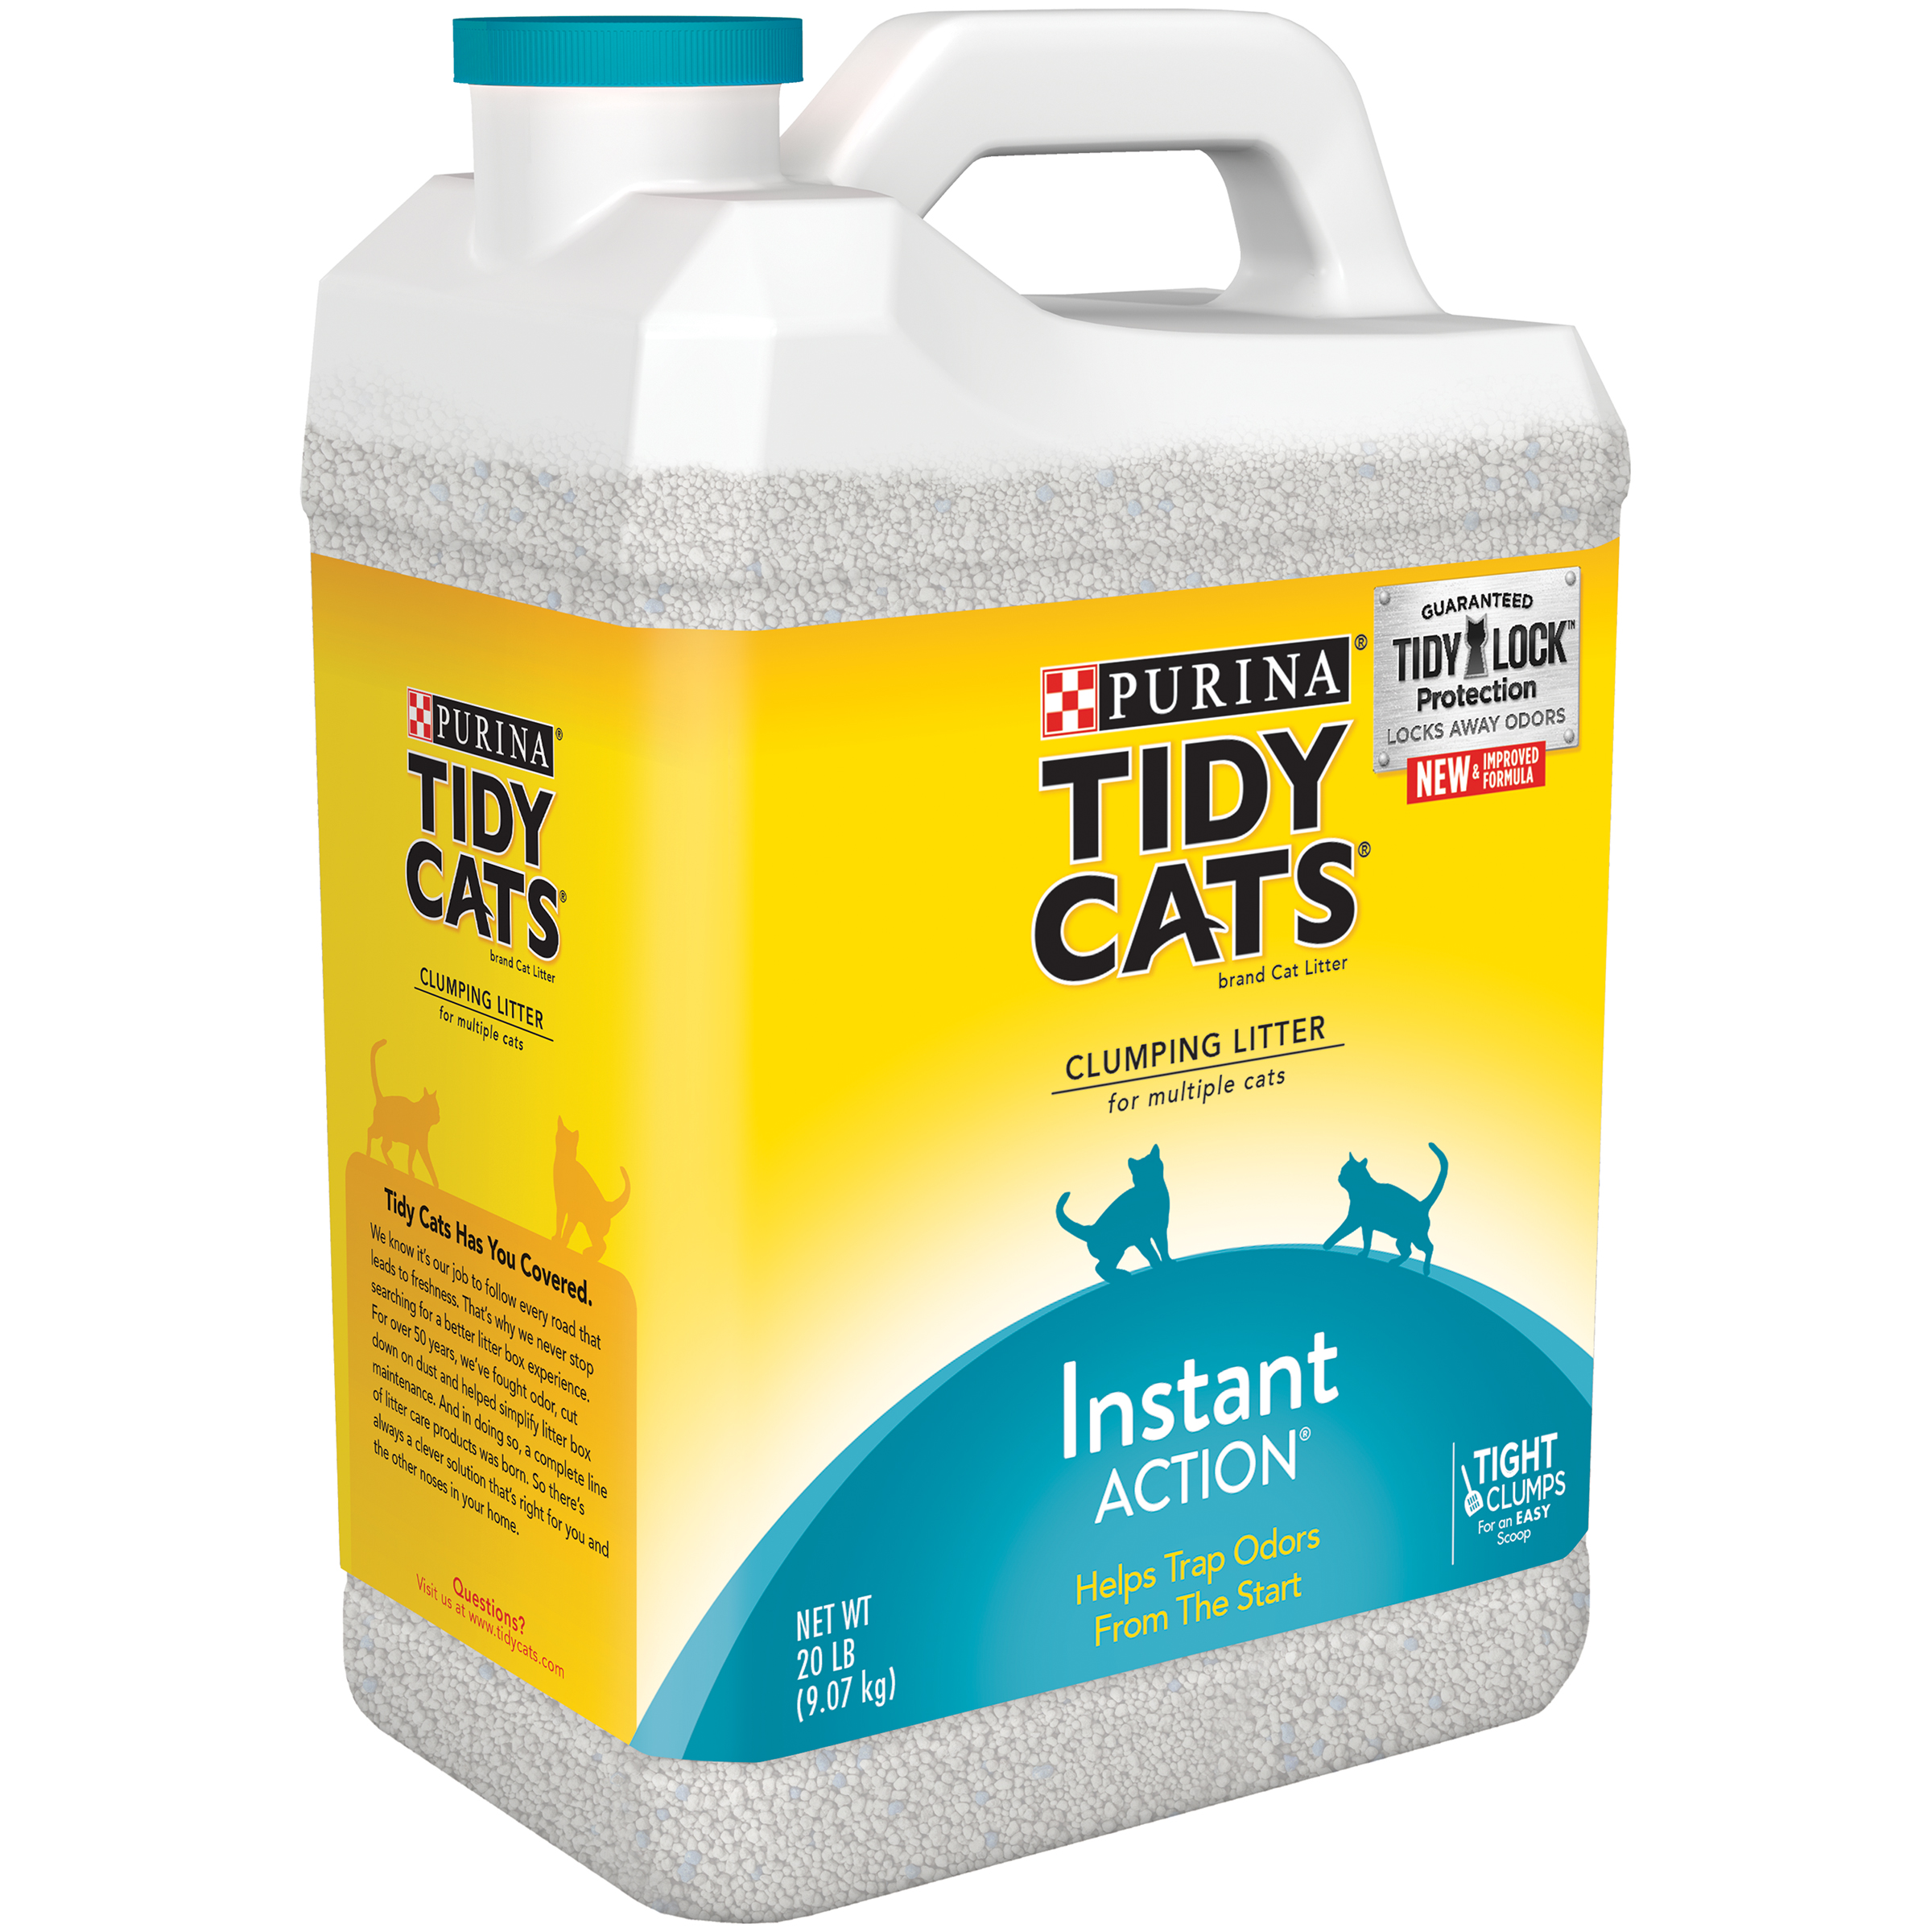 Change the way you think about cleaning your cat's litter box with the Purina Tidy Cats BREEZE Litter System starter kit. With a pass-through system, the pellets capture solid waste on top, letting urine pass through to the absorbent litter pads below.